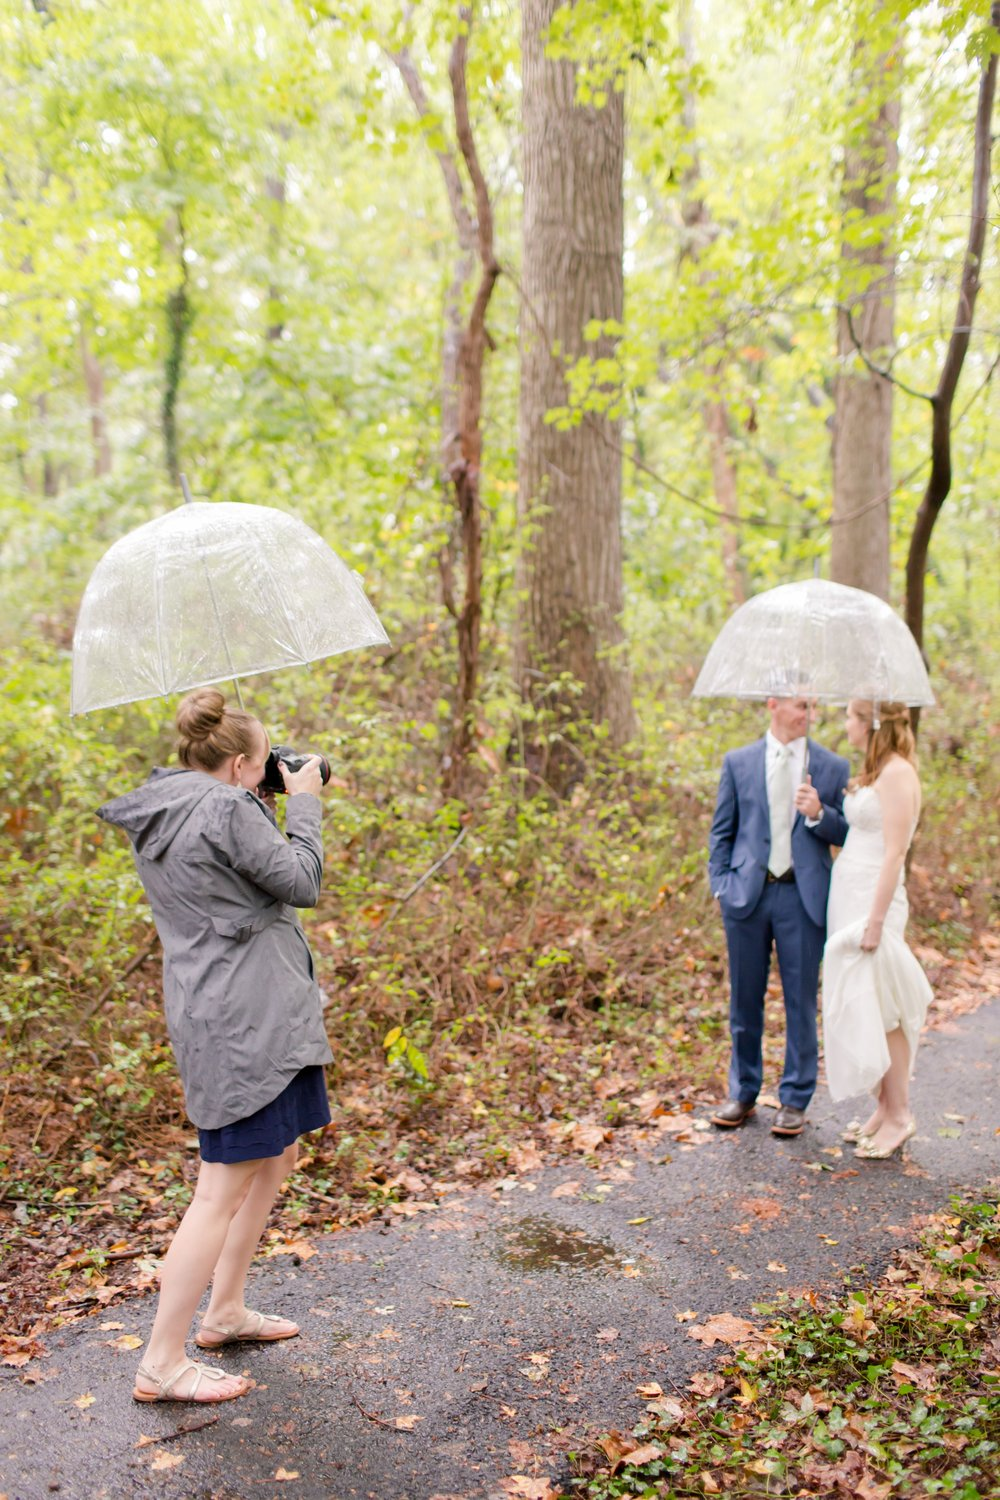 Martin 3-Bride & Groom Portraits-981_anna grace photography baltimore maryland and virginia wedding photographer behind the scenes wedding photo.jpg